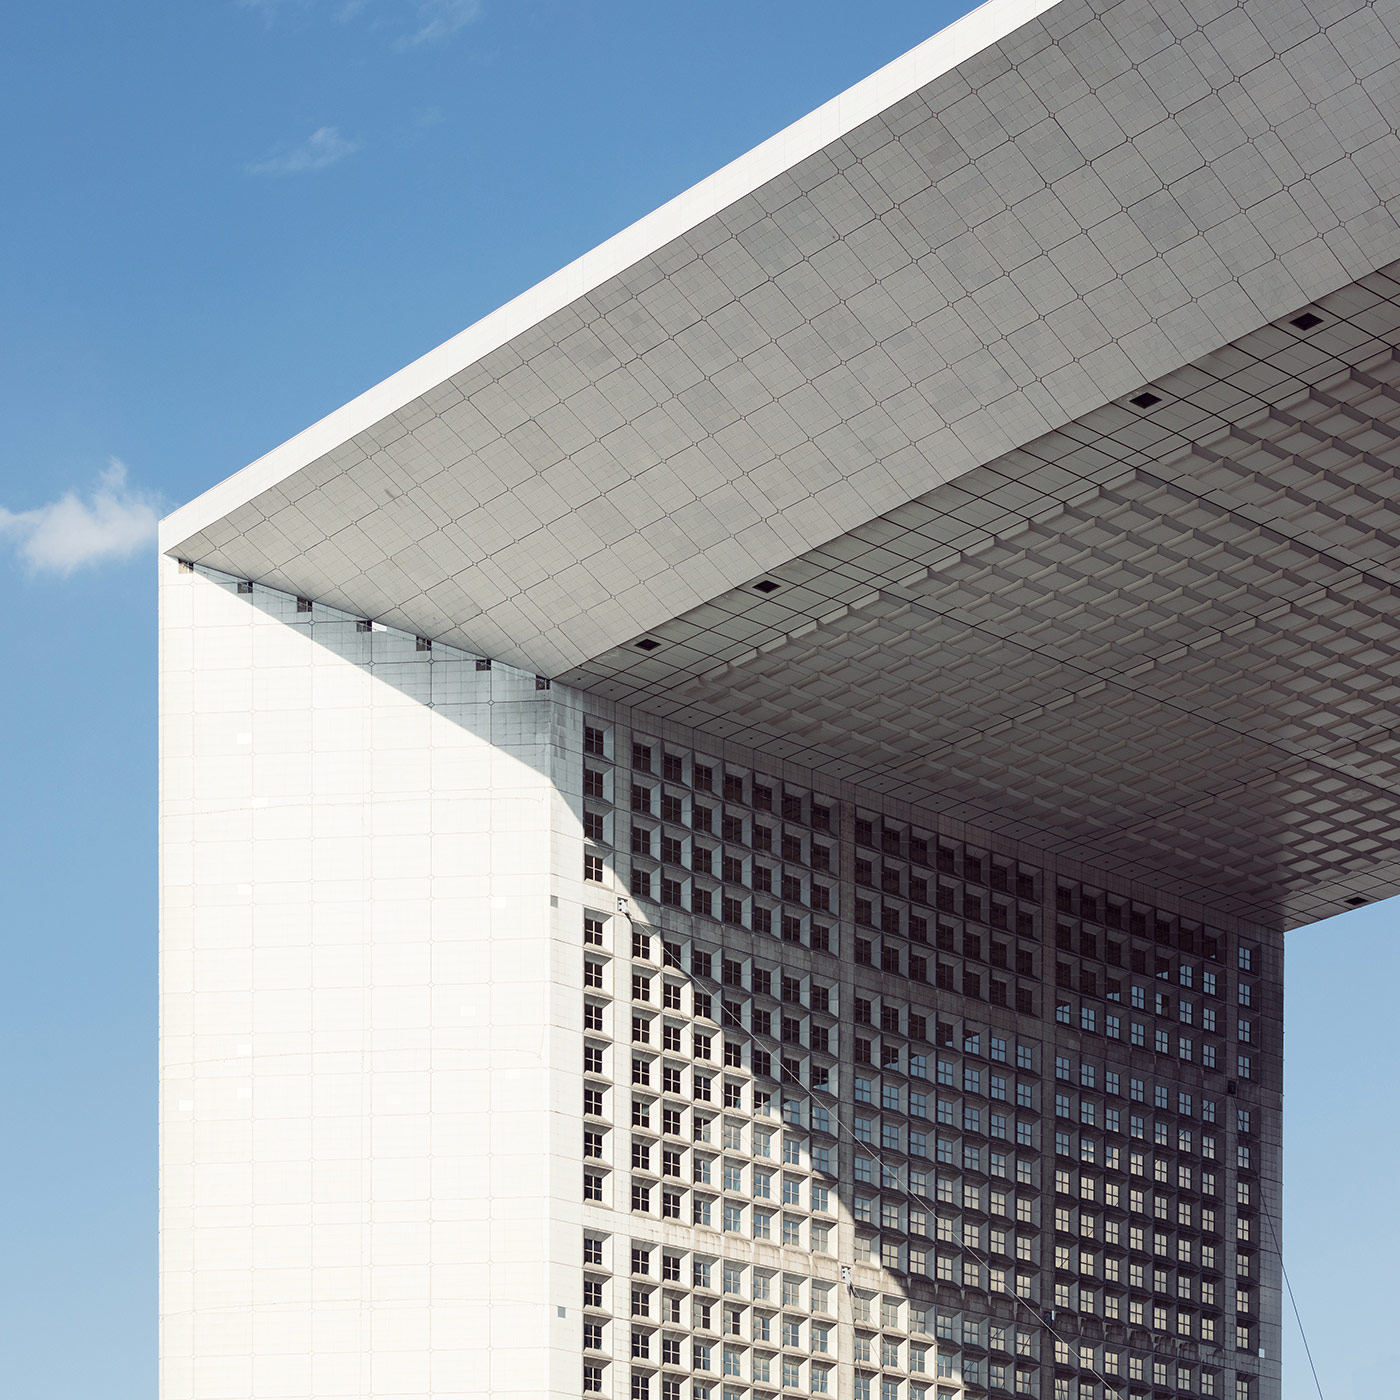 Grande Arche Location: Paris, France Architects: Otto von Spreckelsen and Paul Andreu